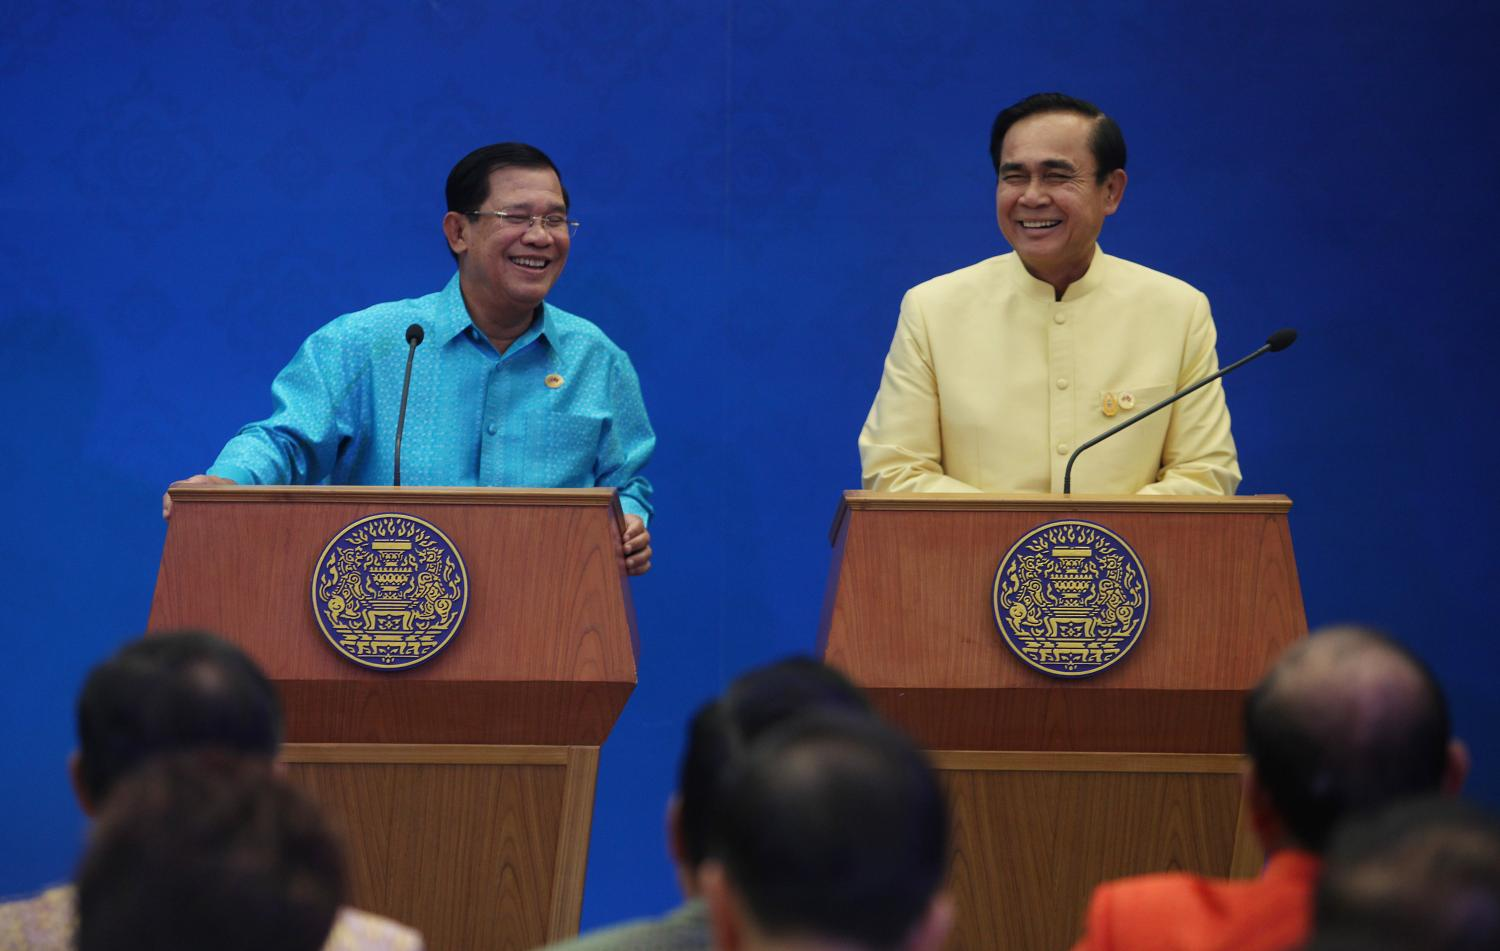 Prime Minister Prayut Chan-o-cha, right, and his Cambodian counterpart Hun Sen address a press conference together in Bangkok in December 2015 .  (Photo by Thiti Wannamontha)